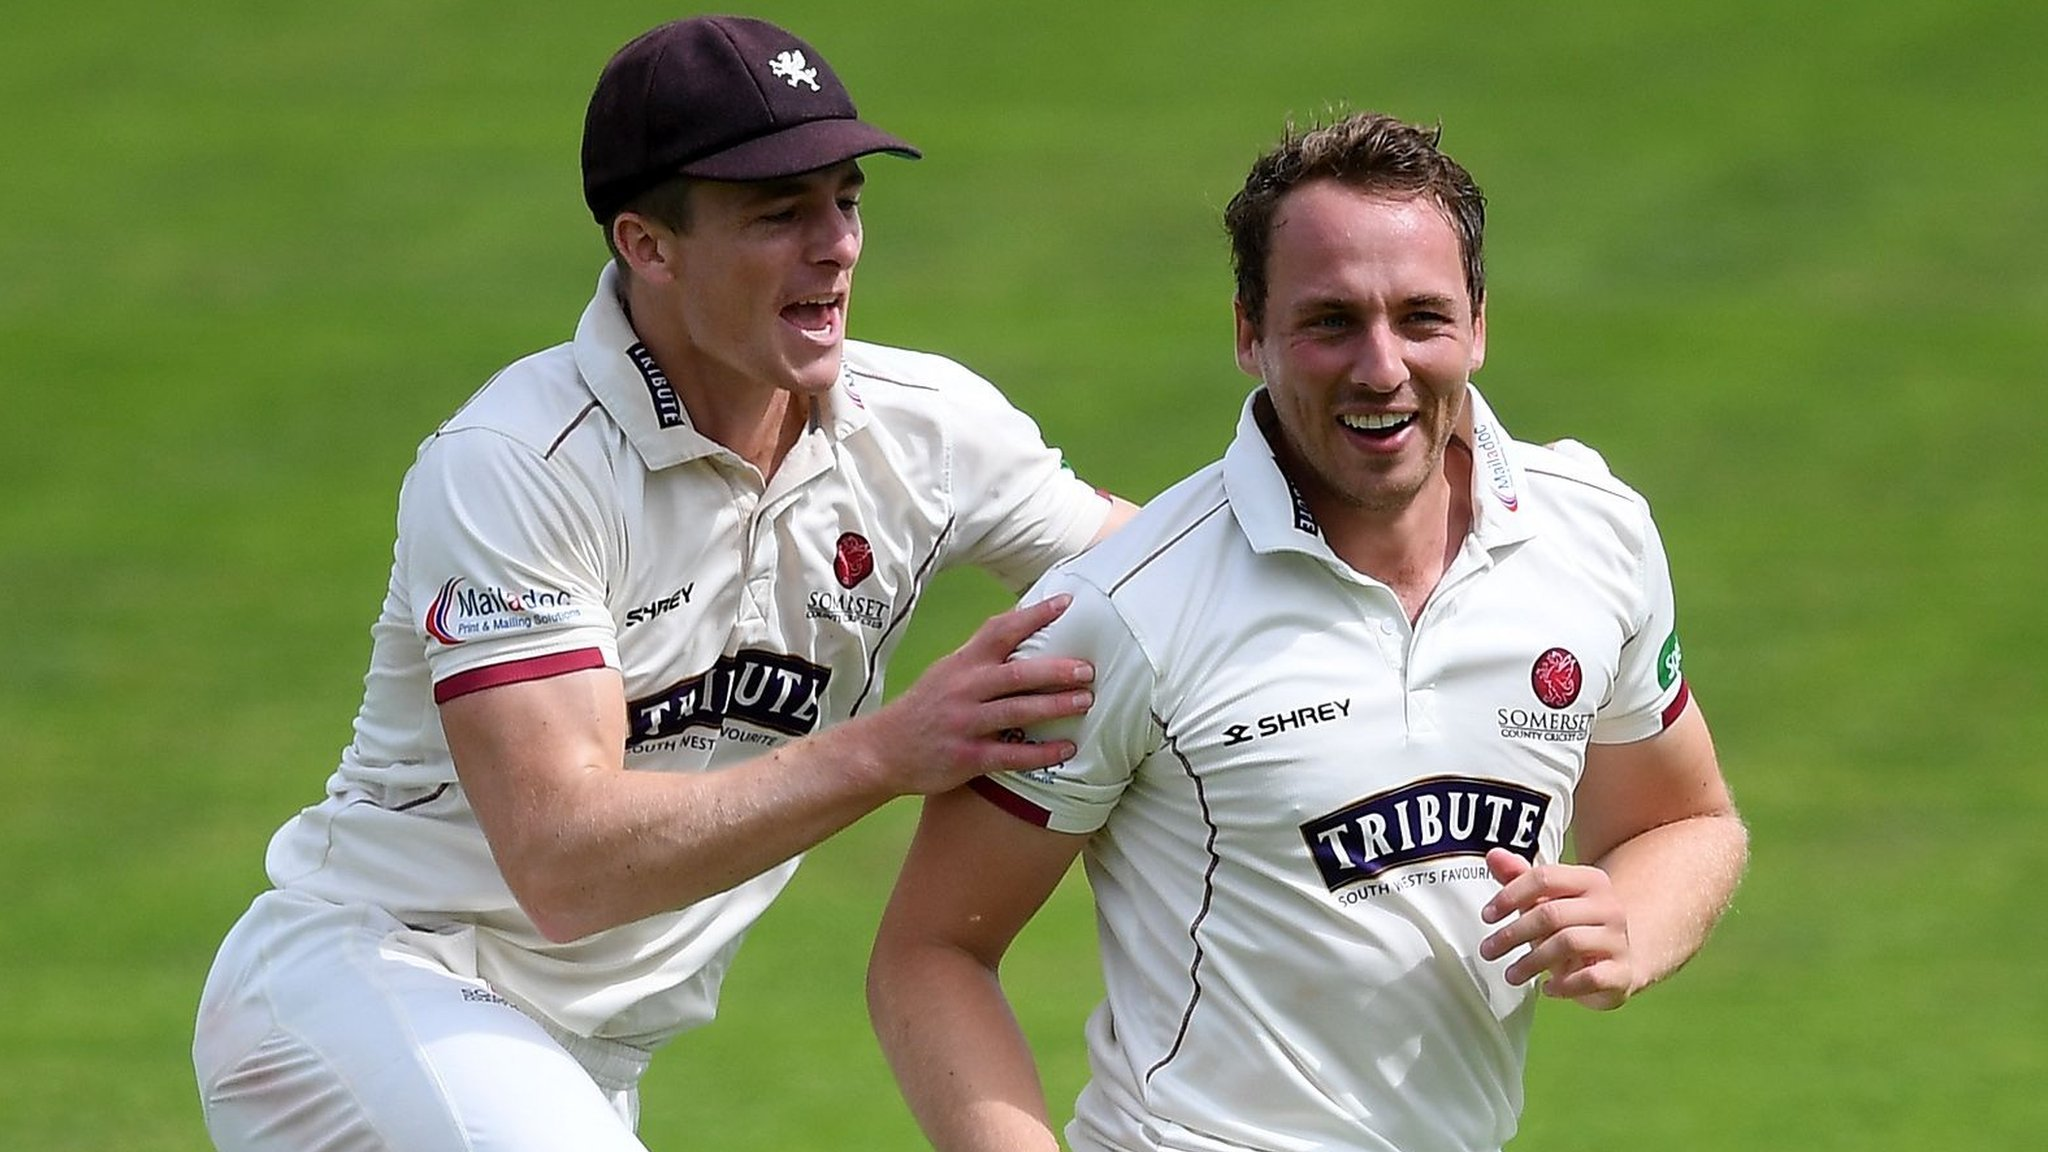 County Championship: Somerset dominate champions Essex on second day